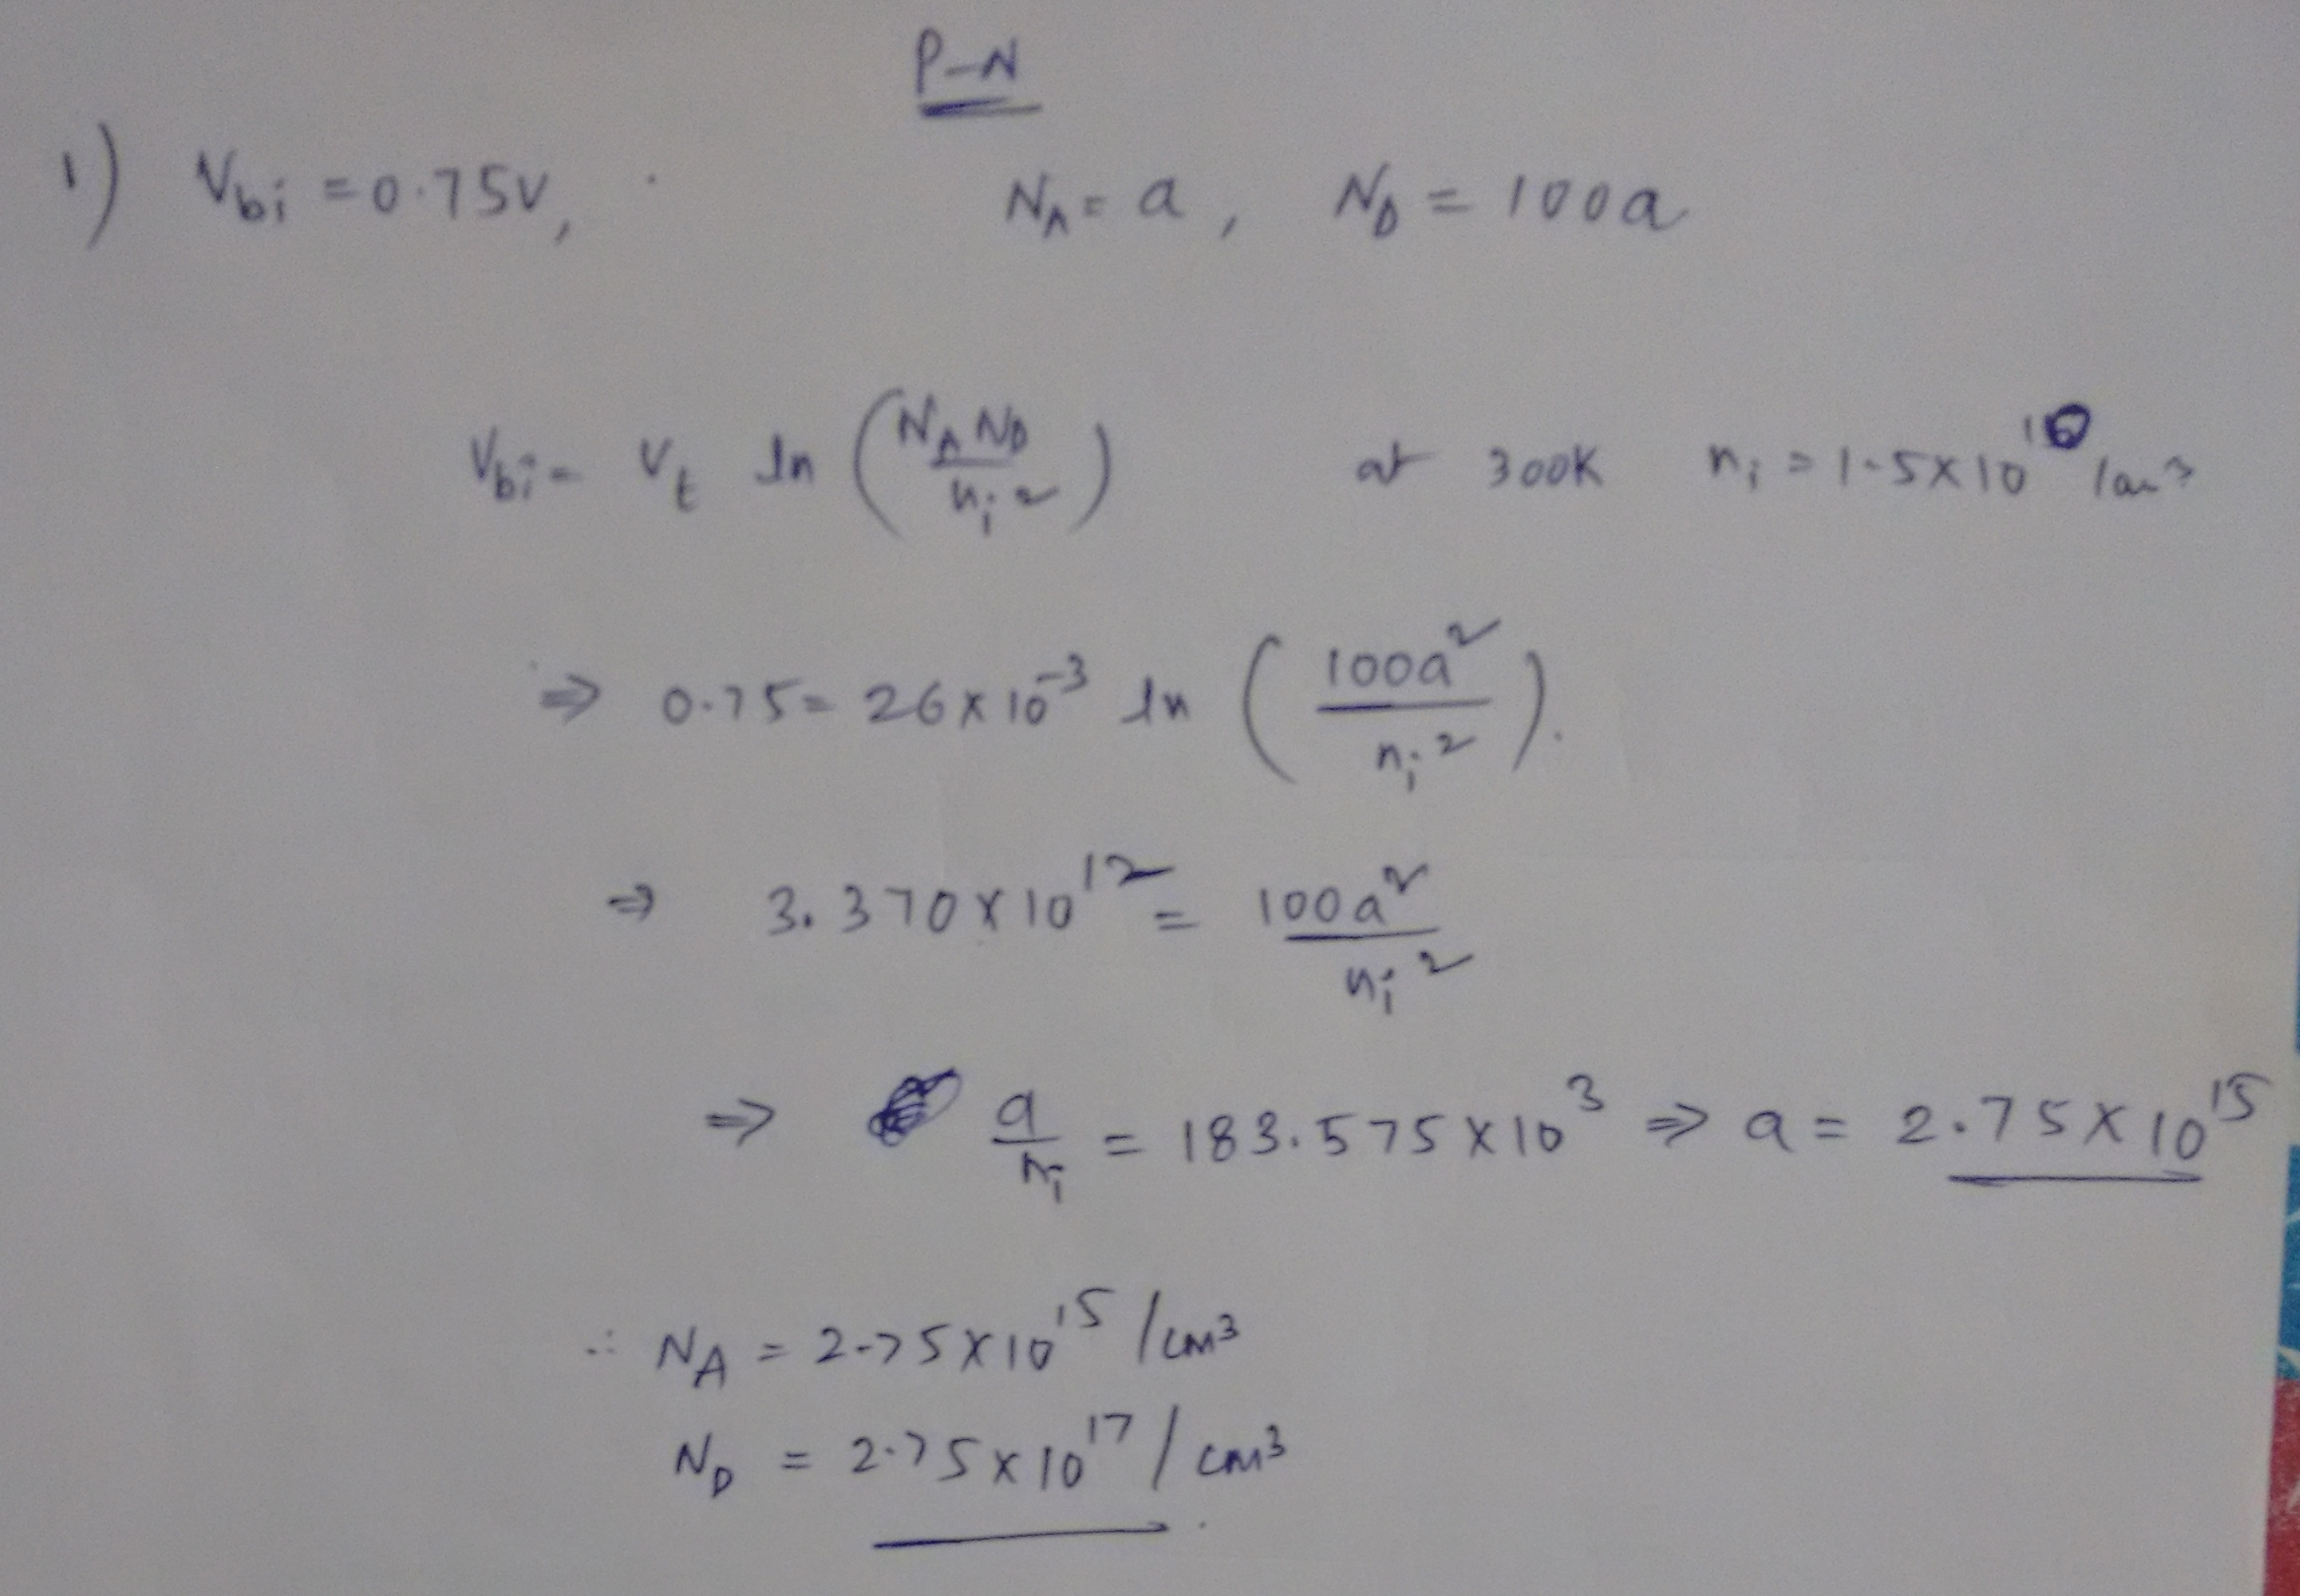 Design a Si PN-Junction, Maximum Electrical Field, Emitter, Base and Collector Currents